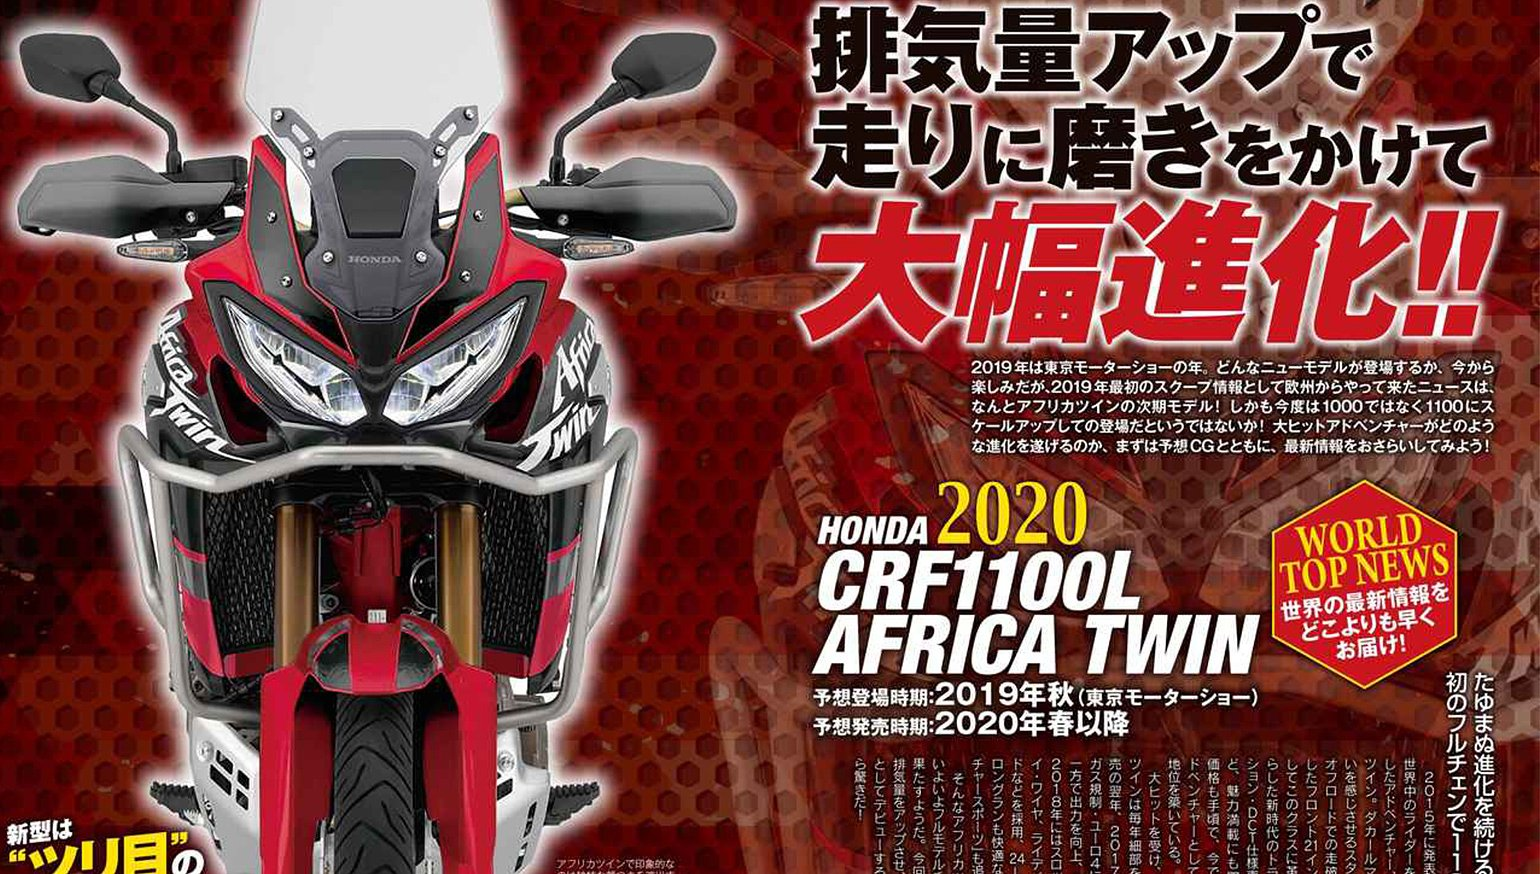 2020 Honda Africa Twin gets a bigger engine, but that's not the real story